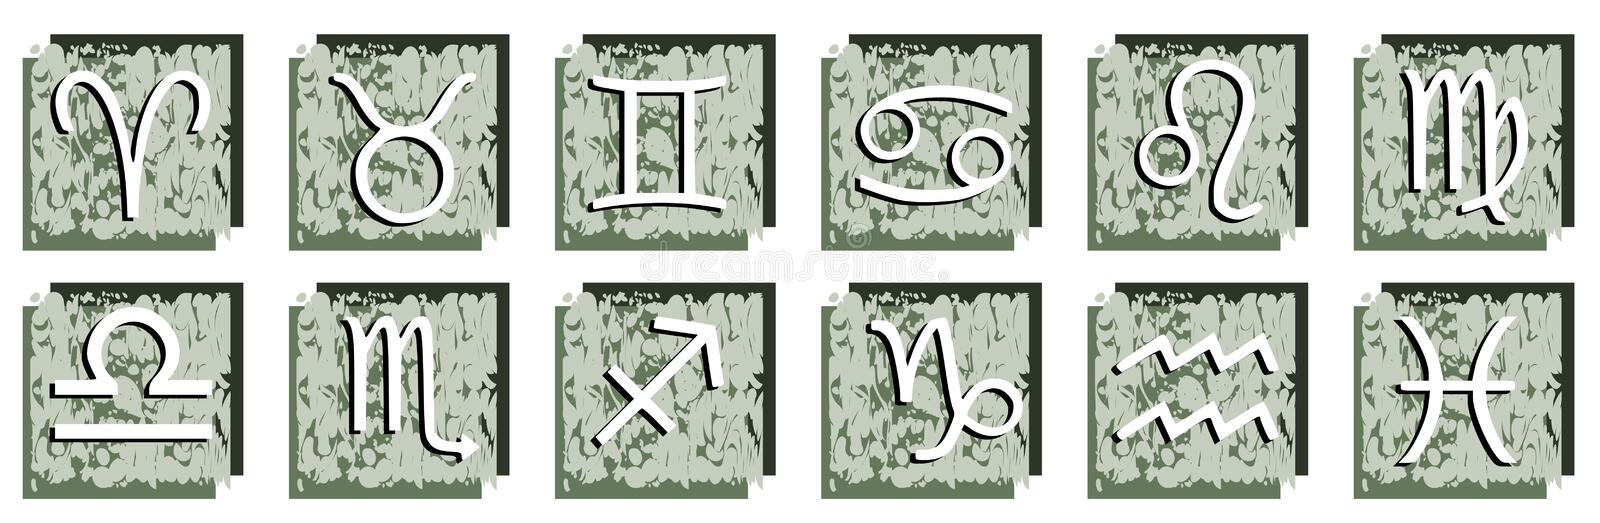 Set of Zodiac signs on abstract background stock illustration